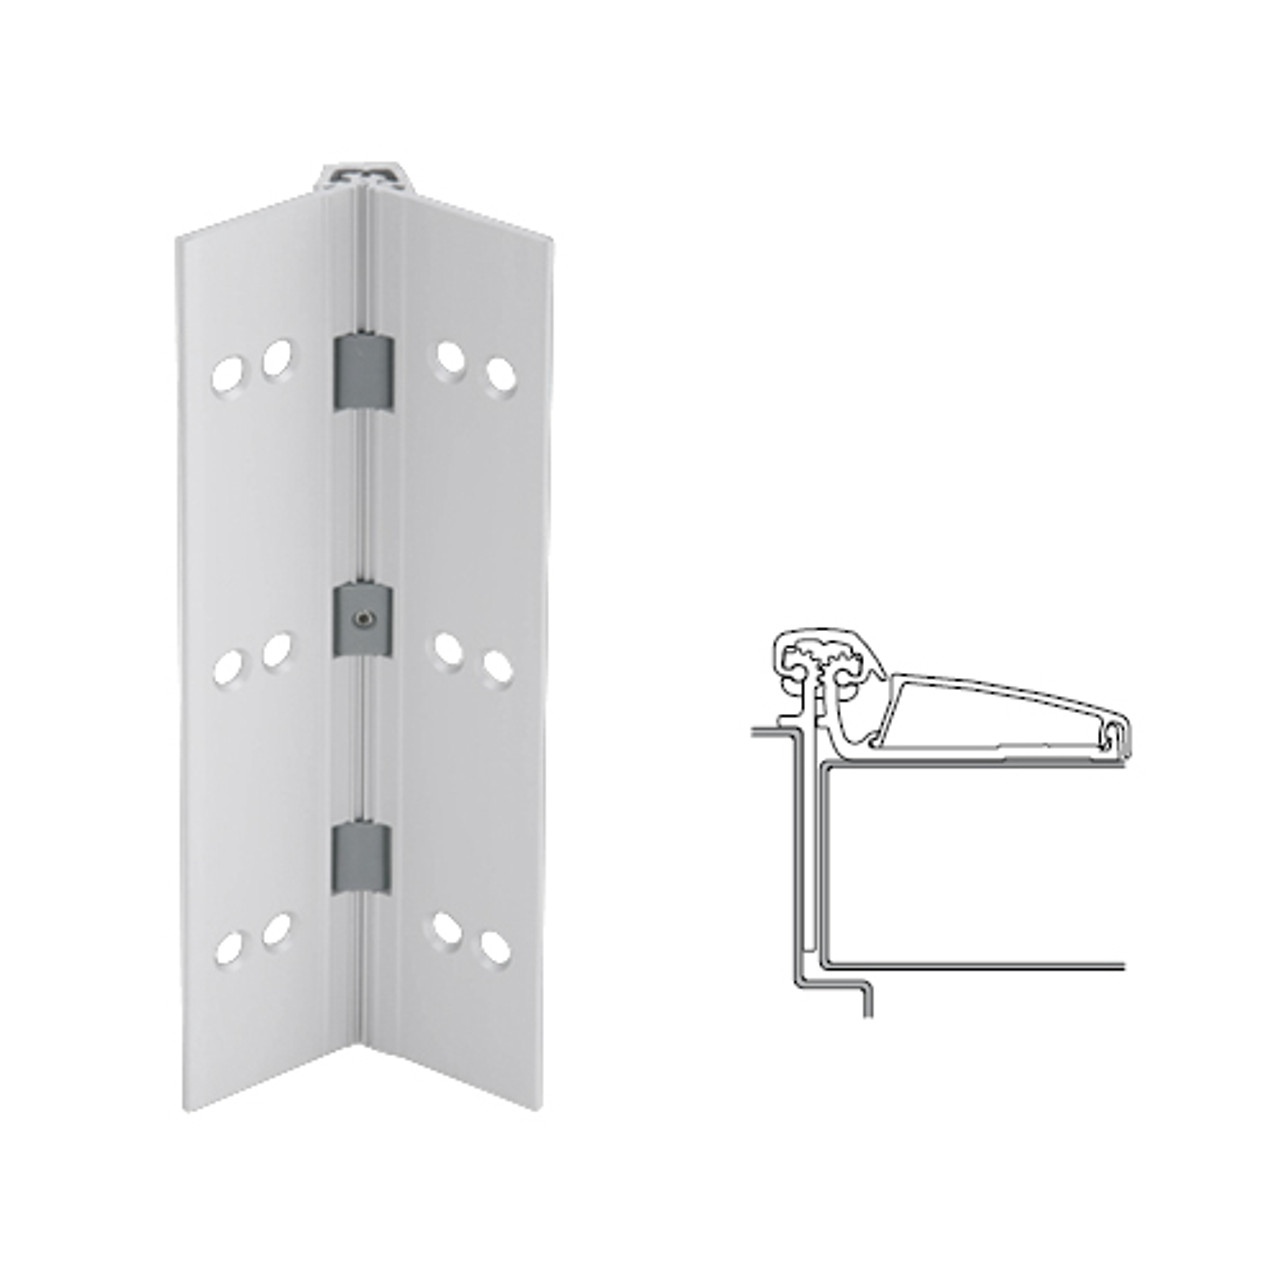 046XY-US28-85 IVES Adjustable Half Surface Continuous Geared Hinges in Satin Aluminum